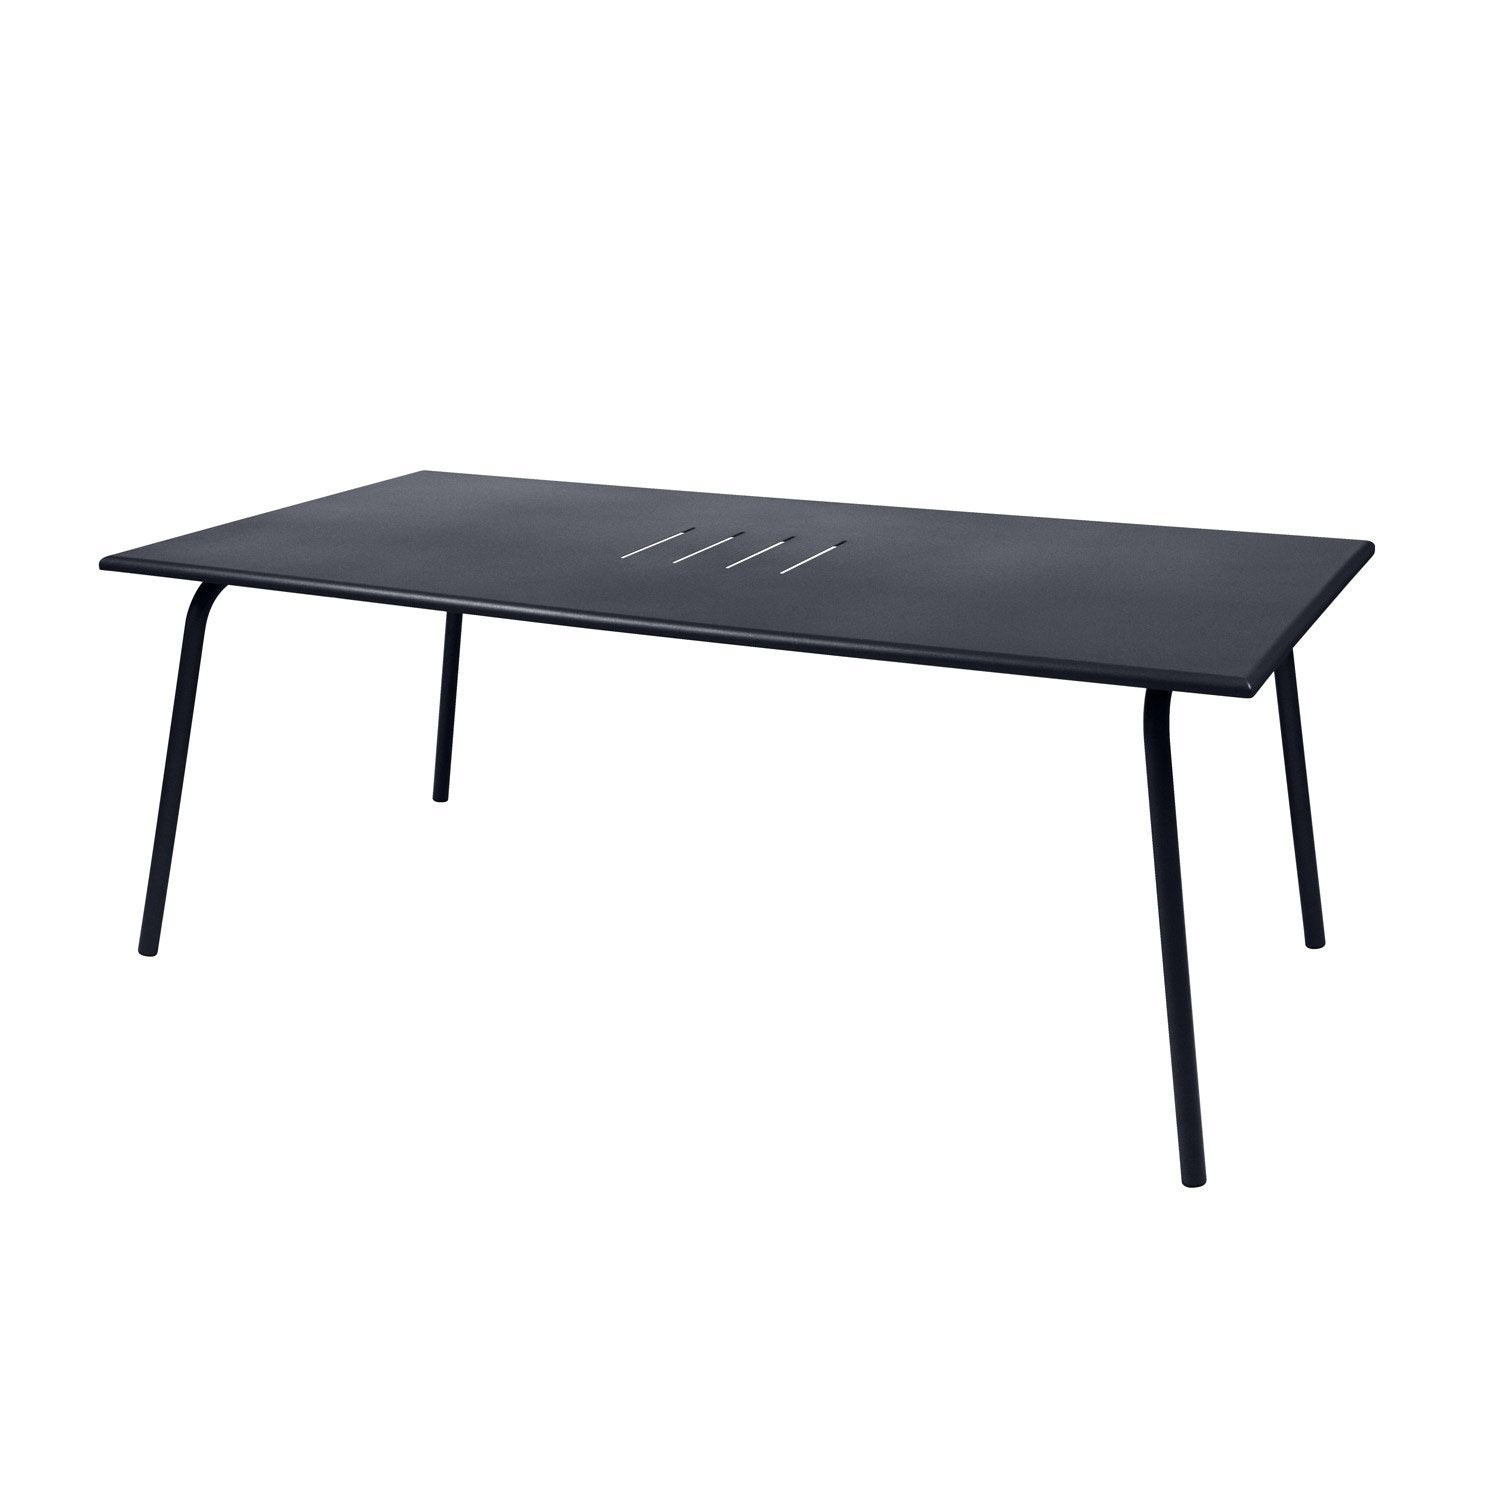 table de jardin fermob monceau rectangulaire carbone 8 personnes leroy merlin. Black Bedroom Furniture Sets. Home Design Ideas